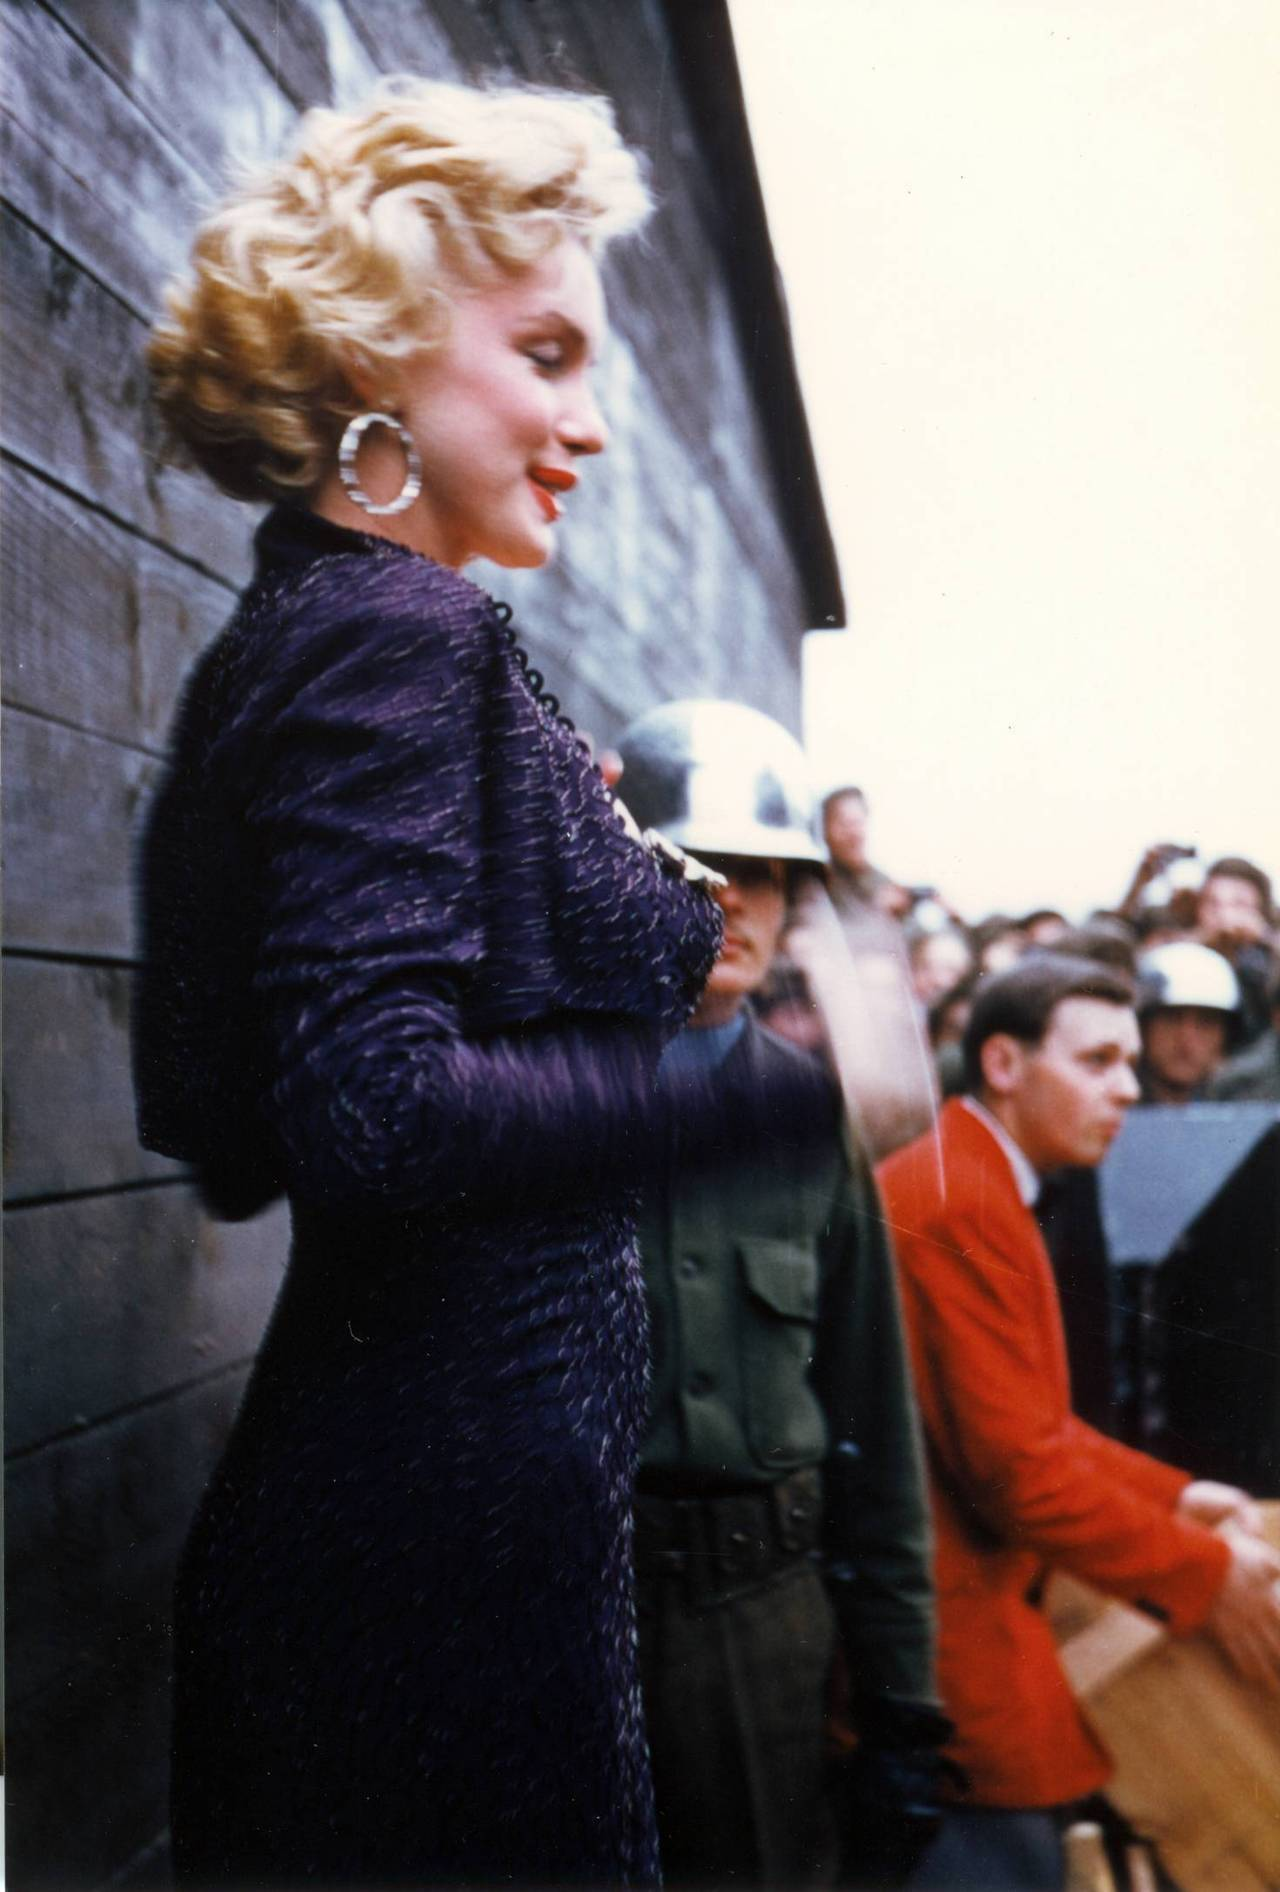 Marilyn Monroe entertaining troops in Korea in 1954